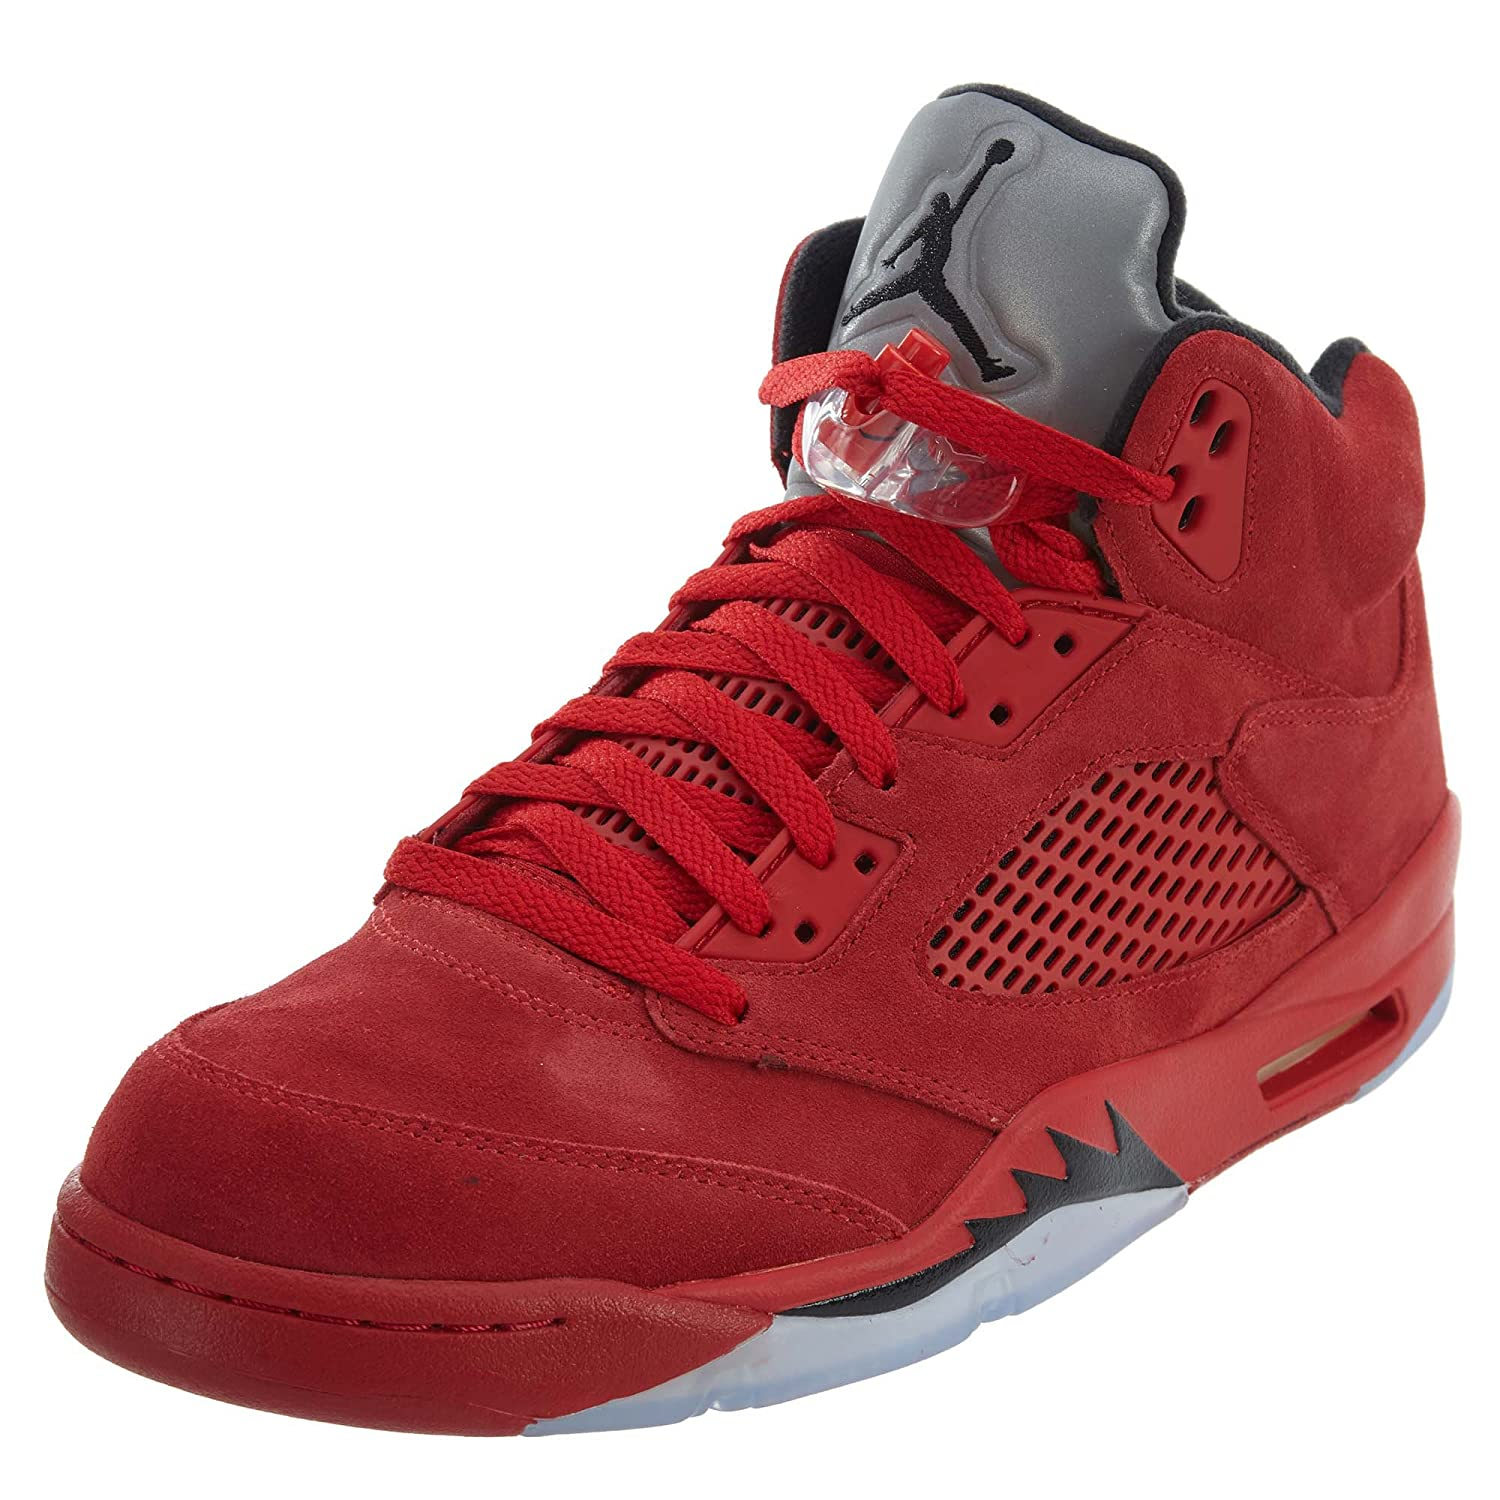 new concept a9932 d2e42 Amazon.com   Jordan Men s Air 5 Retro, University RED Black, 7 M US    Basketball